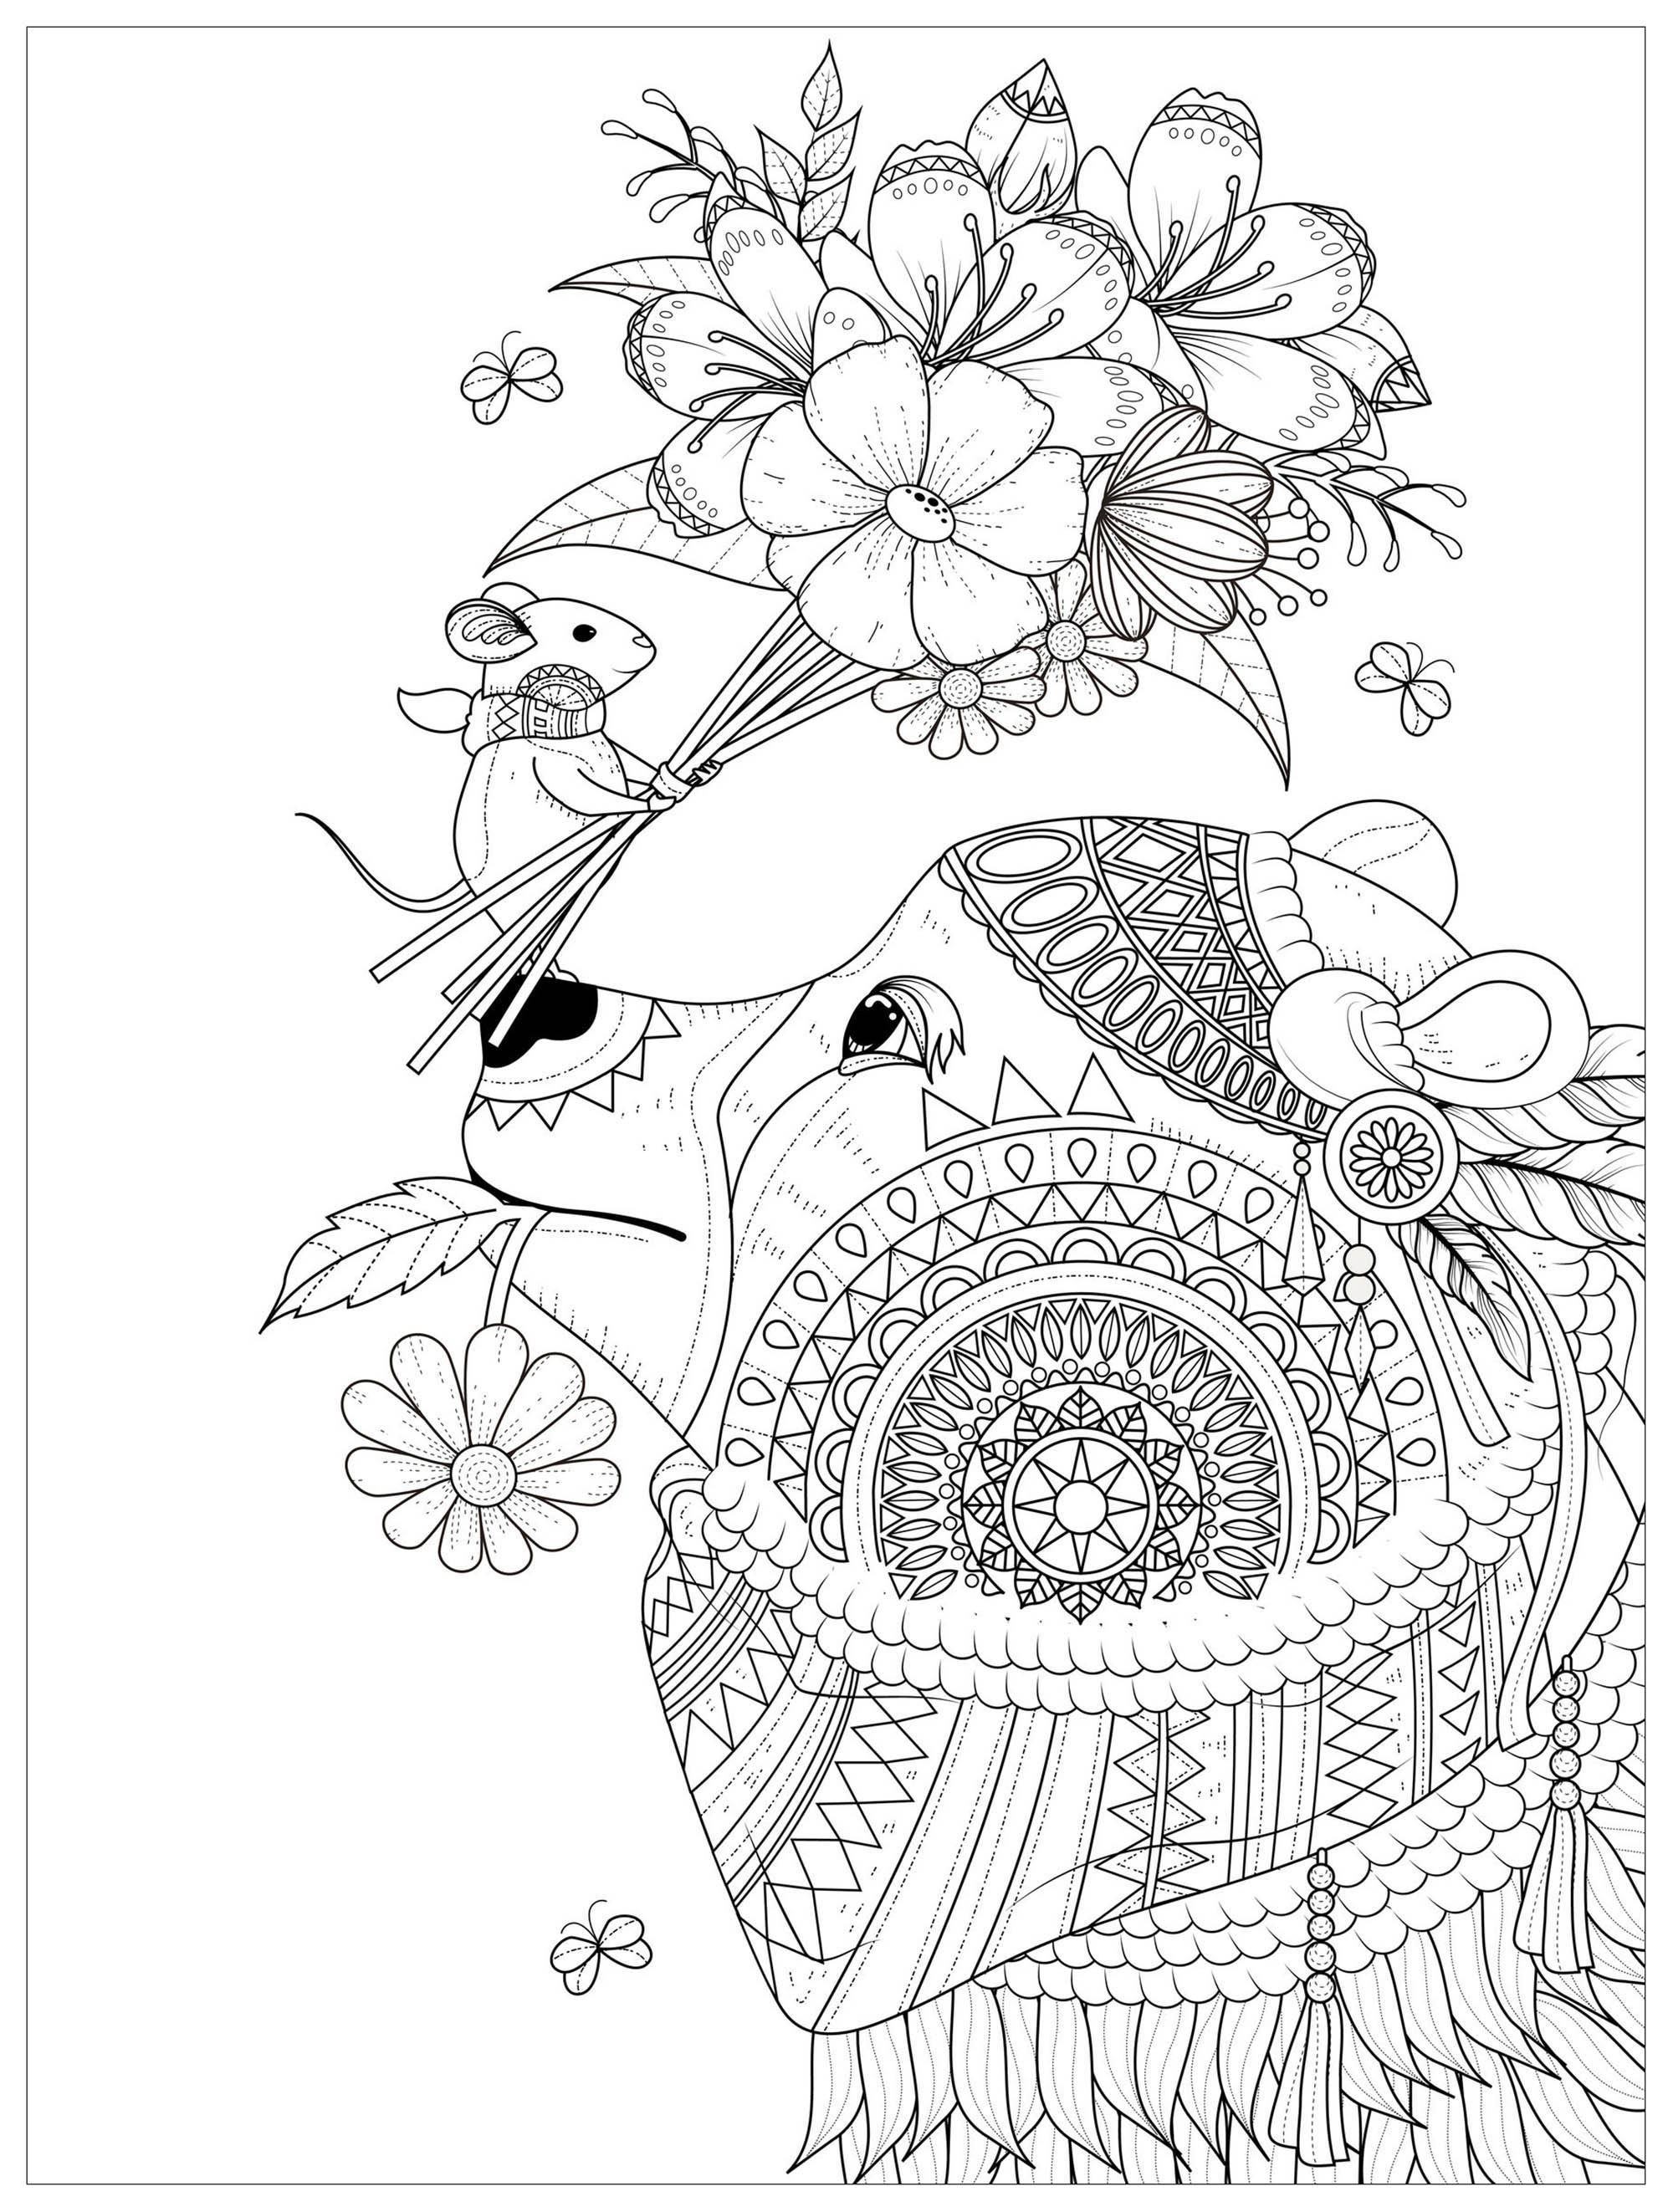 Bear And Mouse Bears Adult Coloring Pages